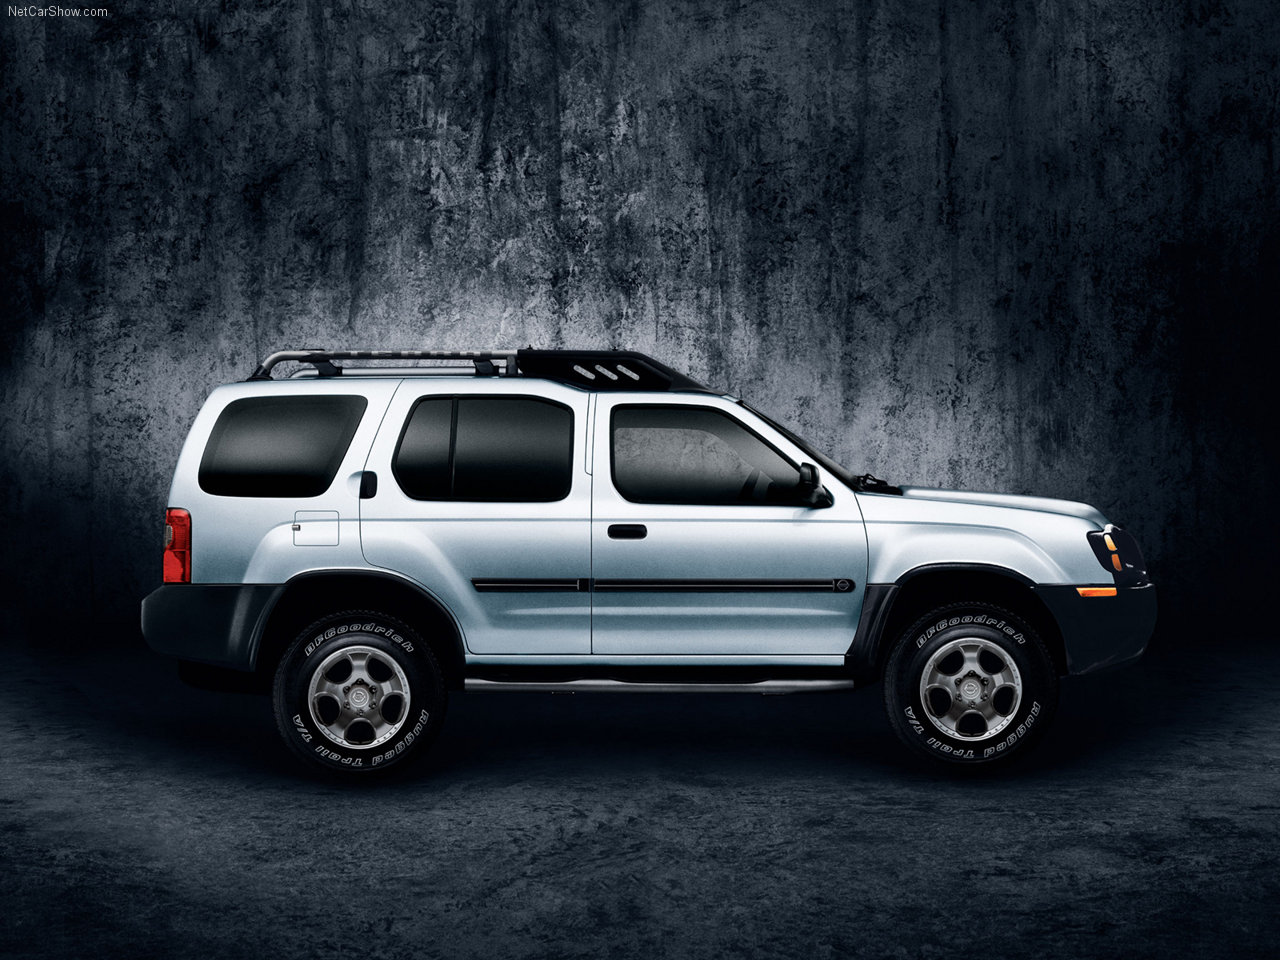 Nissan Xterra: Best Vessel for Arizona Adventure